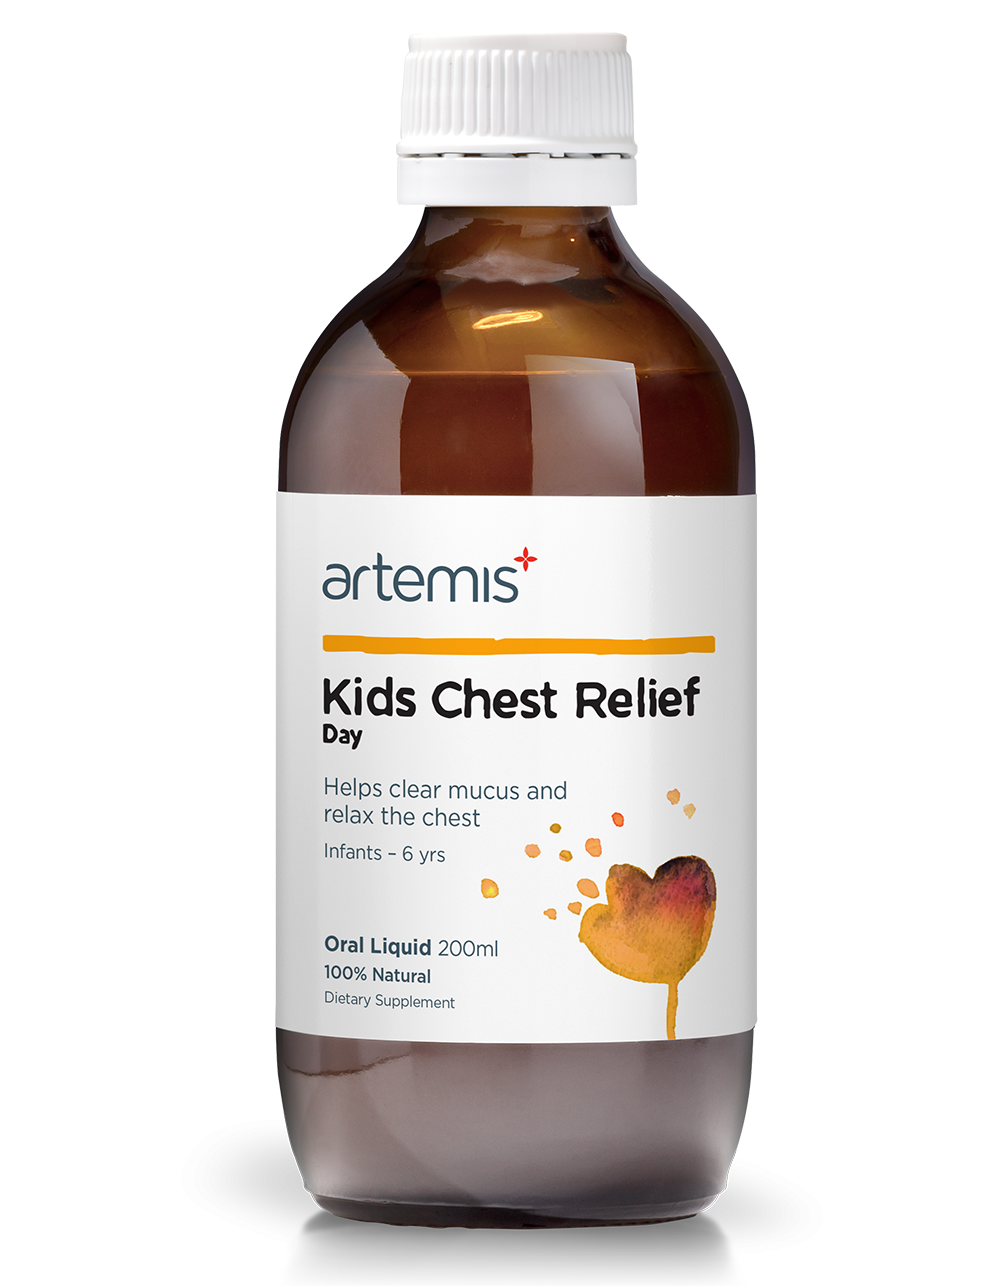 Artemis Kids Chest Relief Day - HO ARTEMIS NGÀY